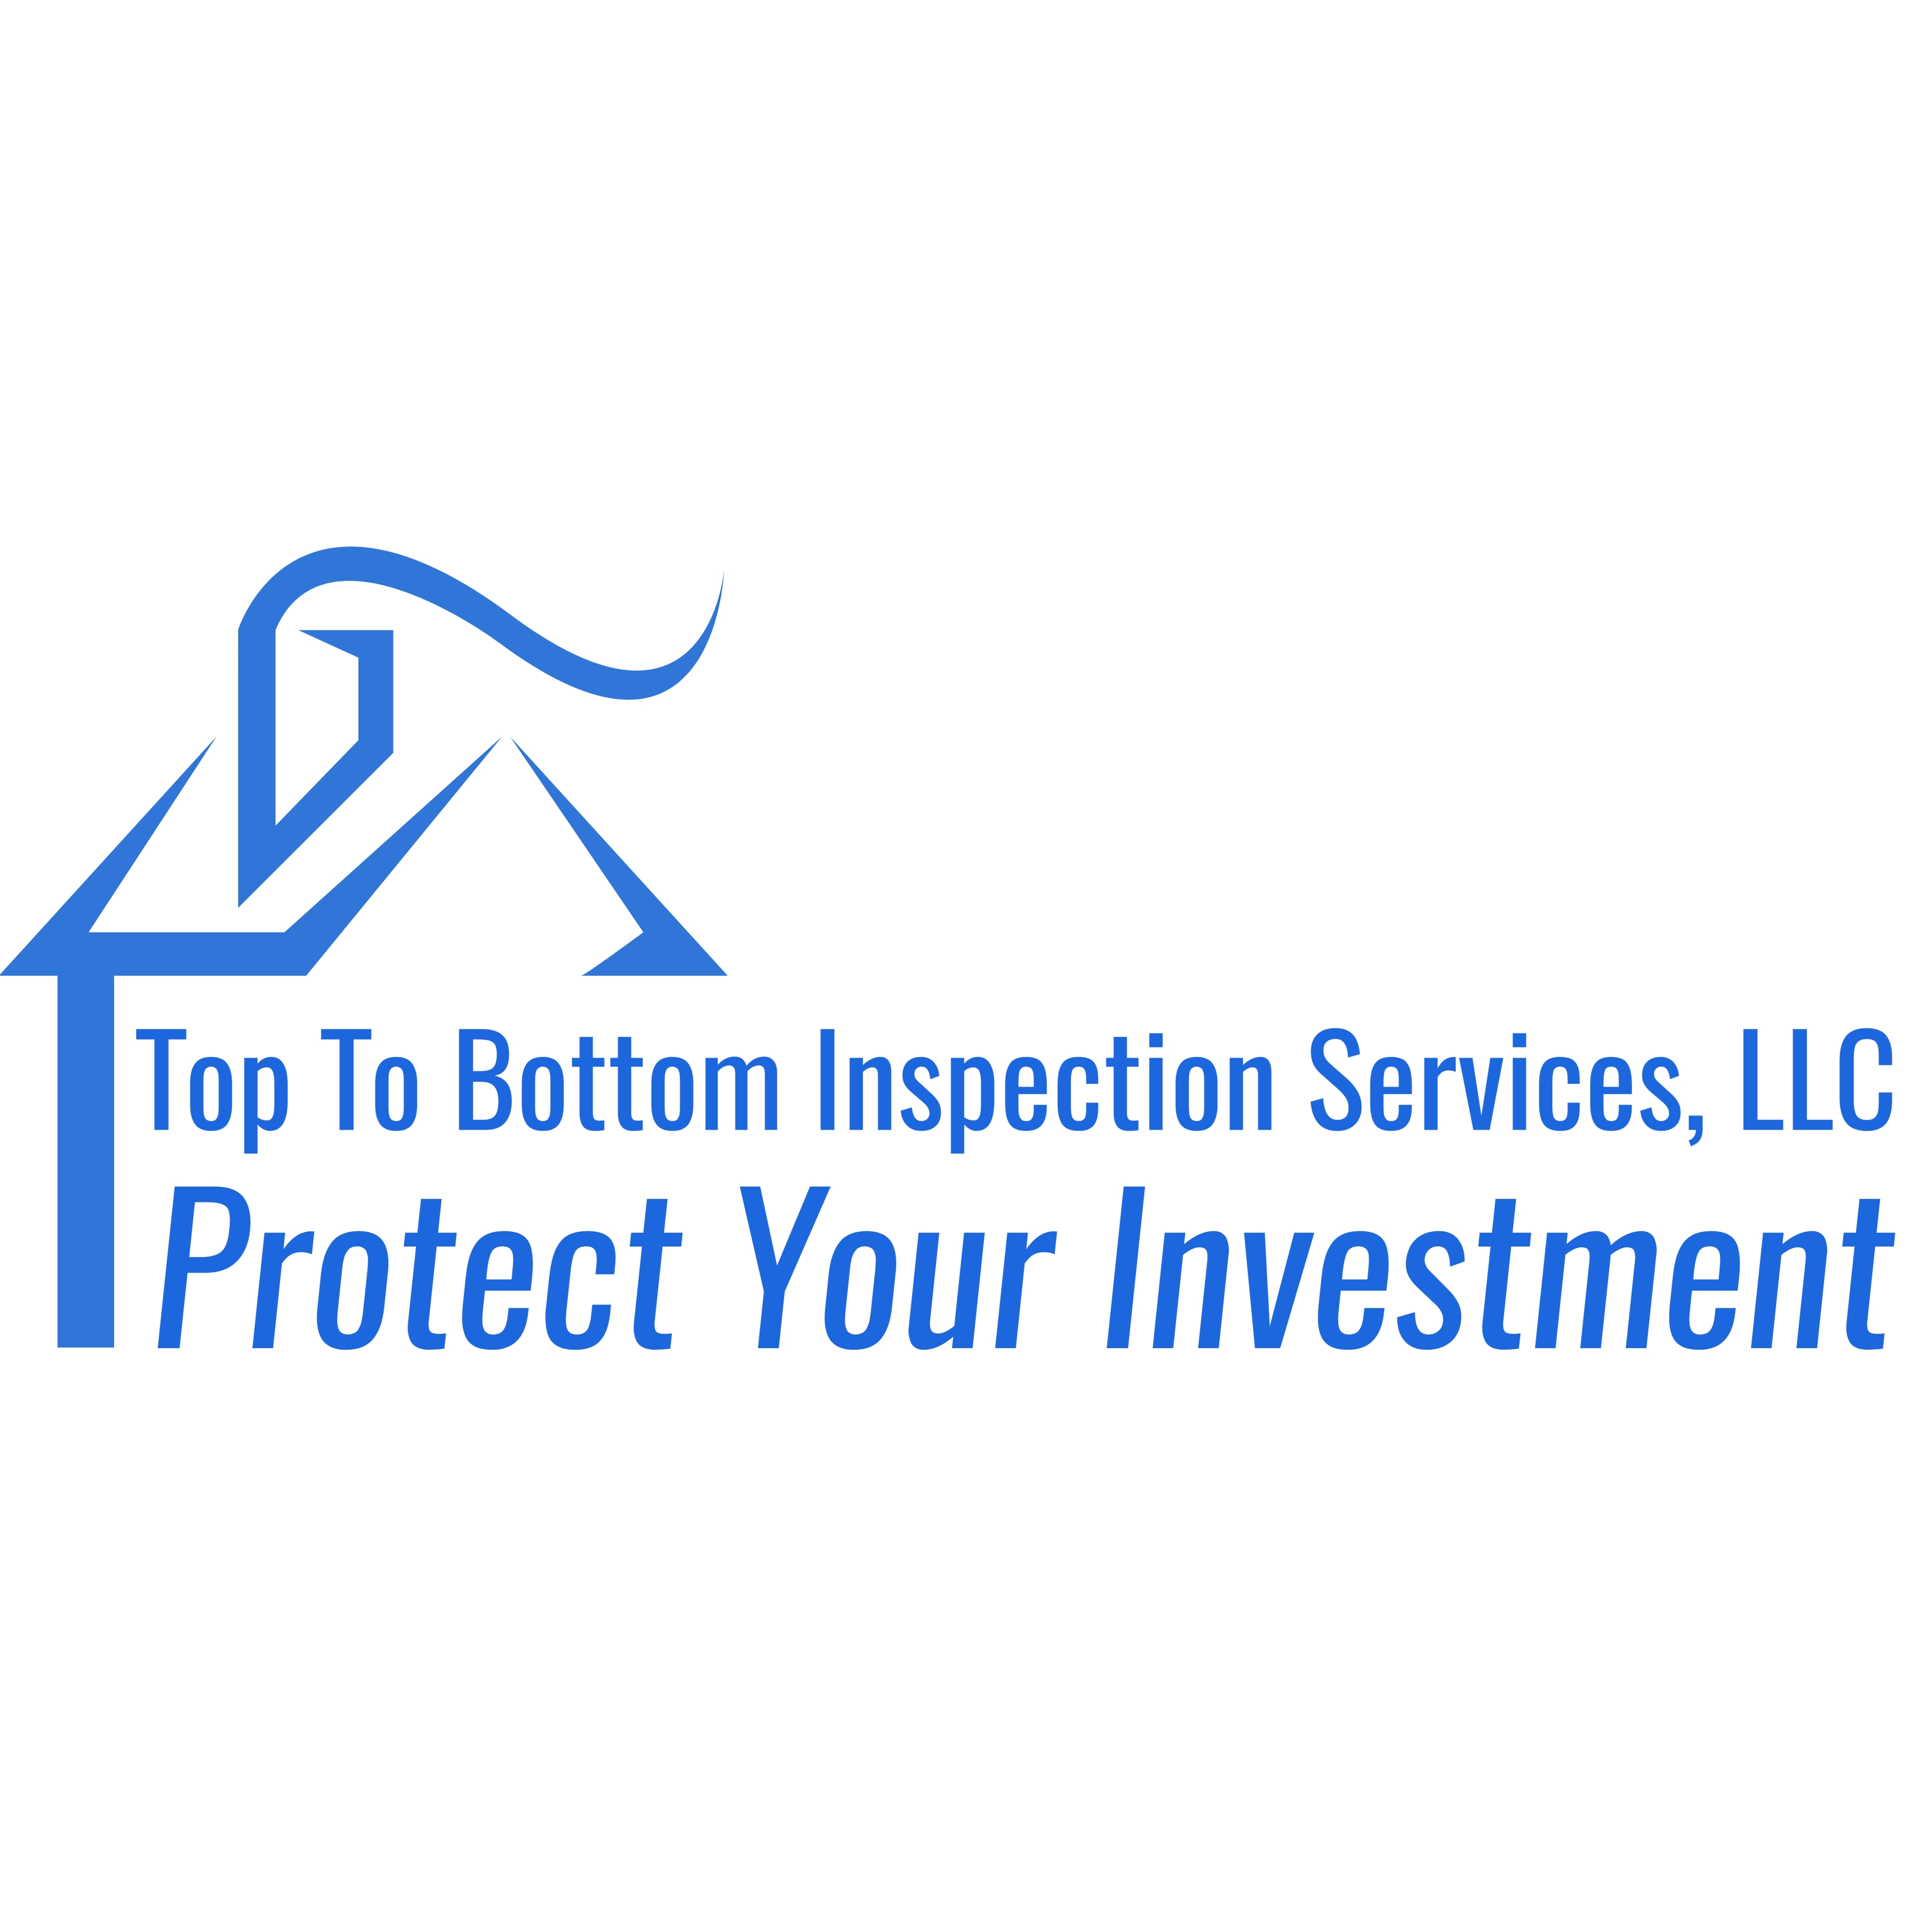 Top To Bottom Inspection Services, LLC